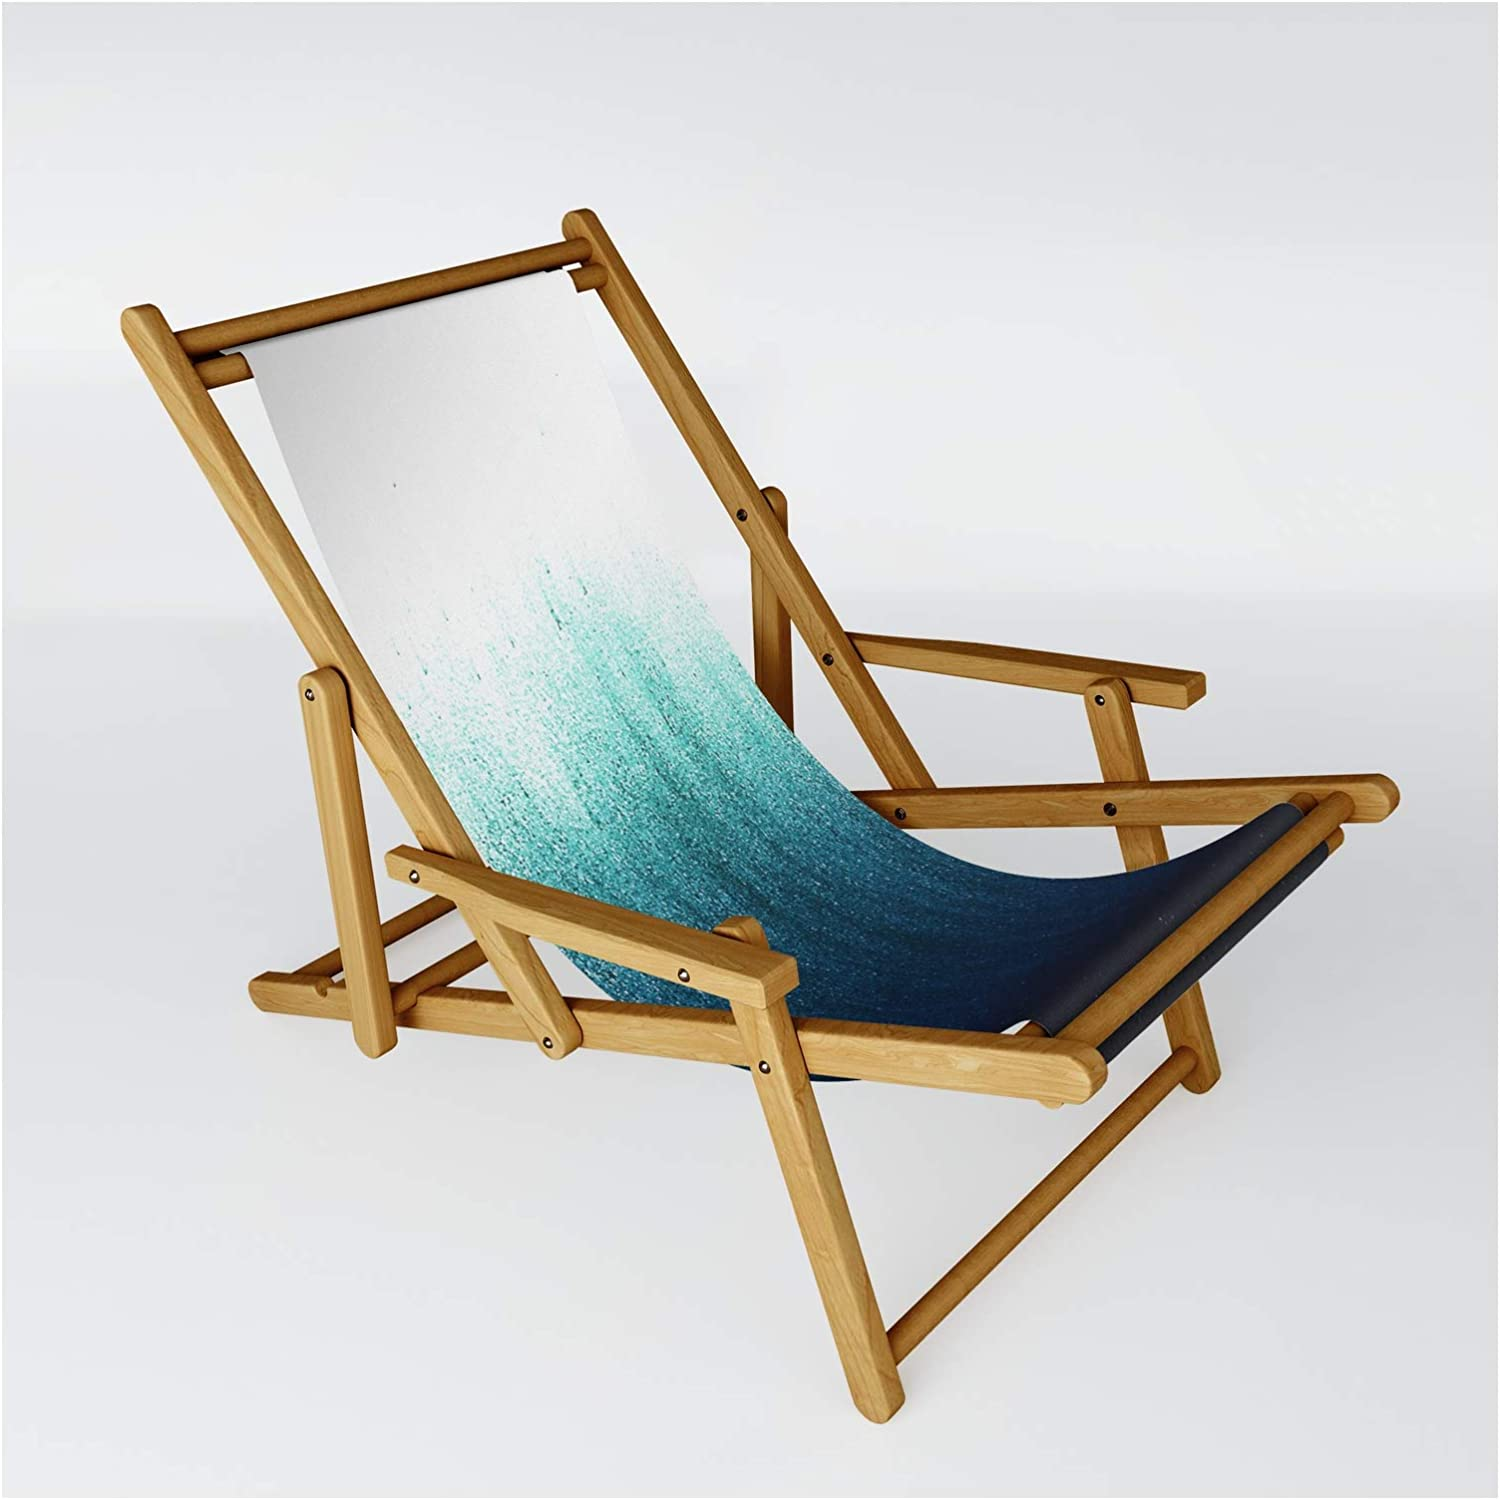 Ranking TOP9 Choice Society6 Teal Ombre by Caitlin Workman One - Size on Sling Chair